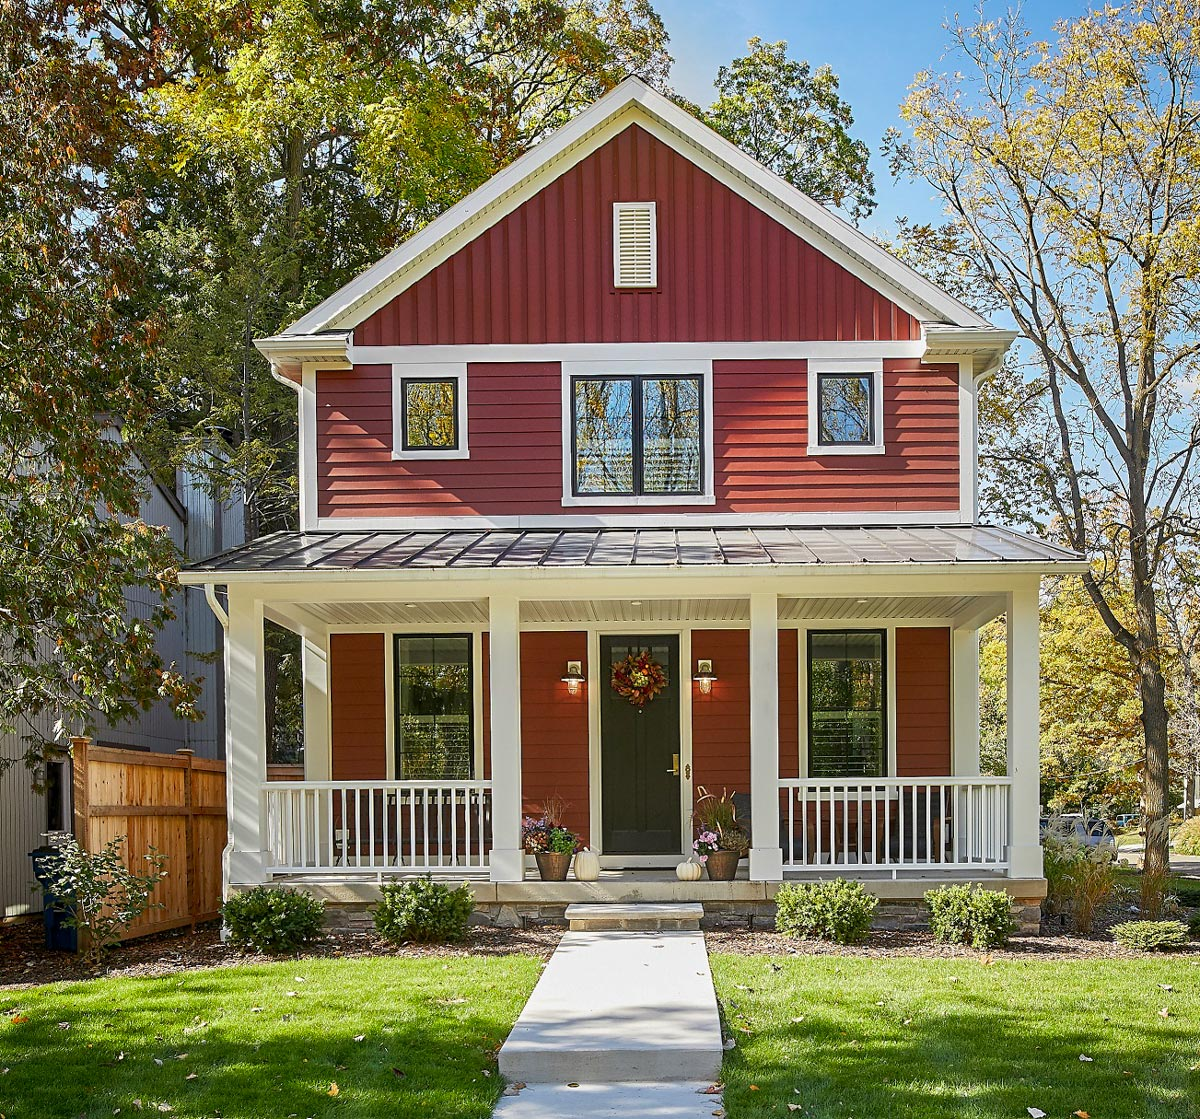 Adorable Three Bedroom Cottage - 970057VC | Architectural ...